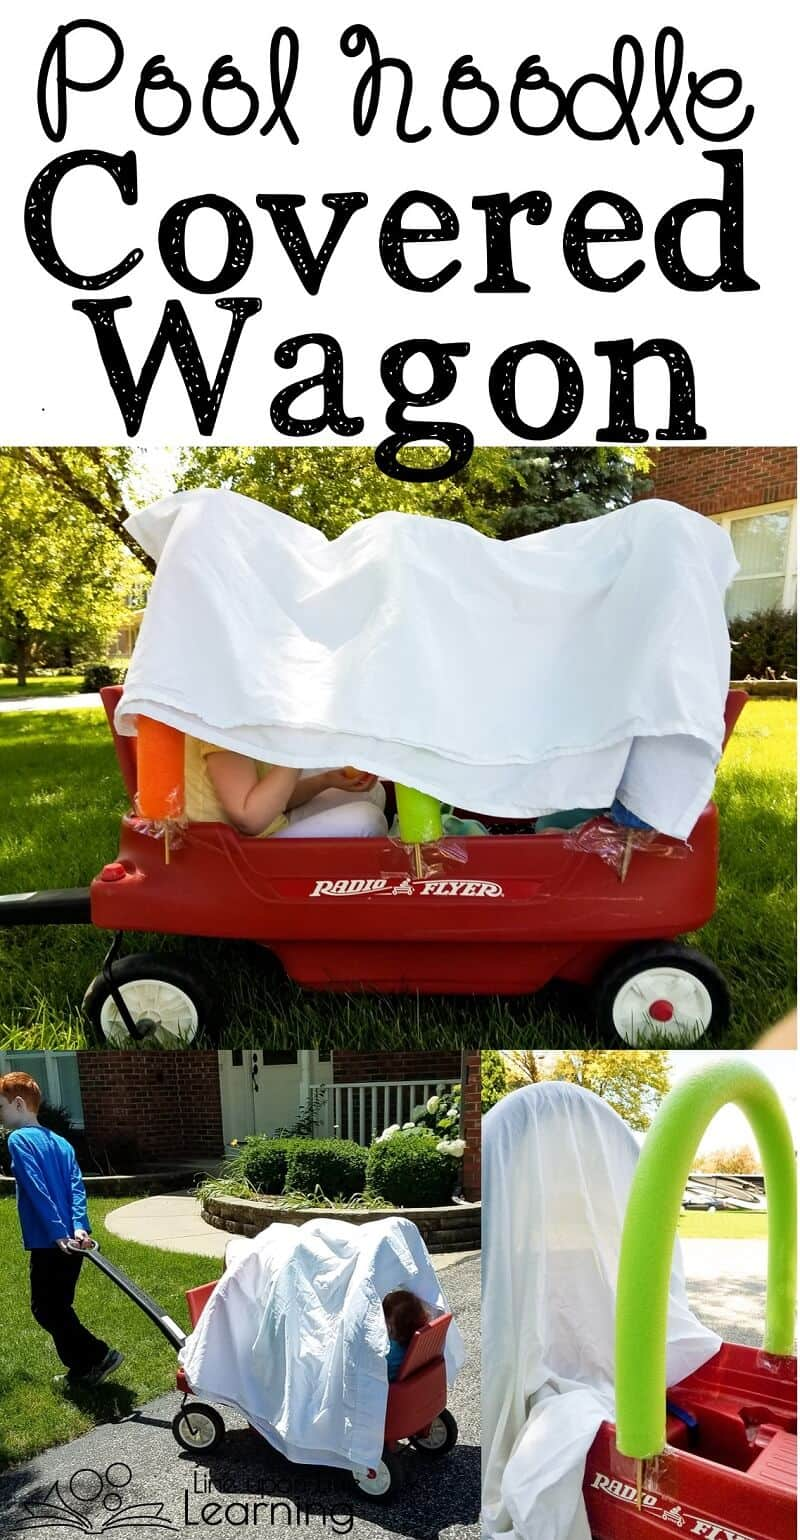 """Use pool noodles and your own wagon to create the perfect Covered Wagon for playing """"pioneers""""!"""